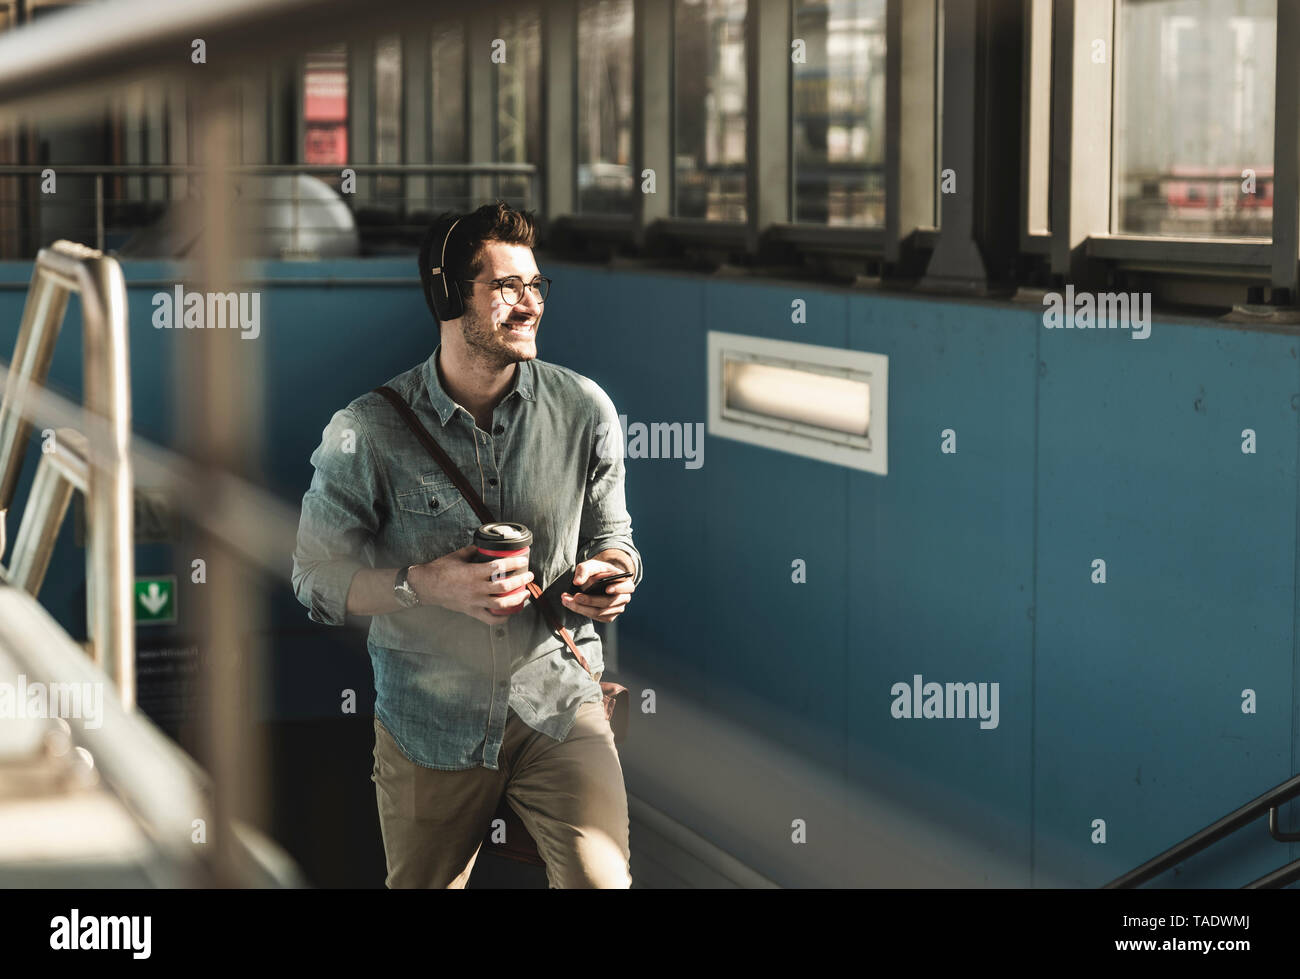 Smiling young man with headphones, cell phone and takeaway coffee walking at the station - Stock Image